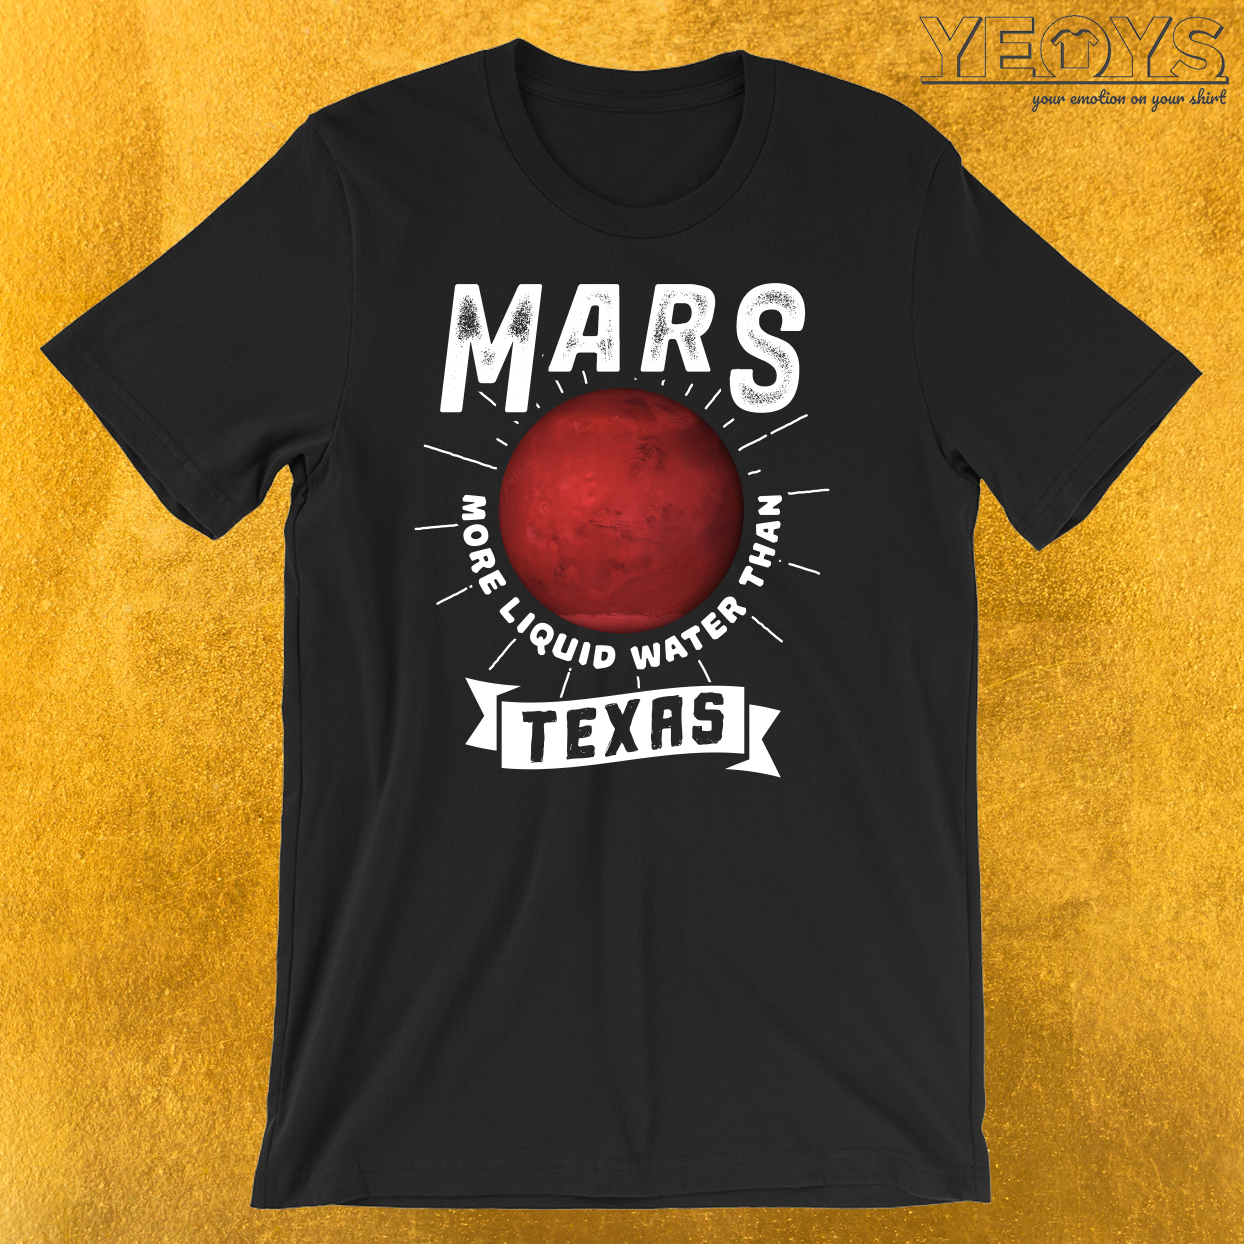 Mars More Liquid Water Than Texas T-Shirt